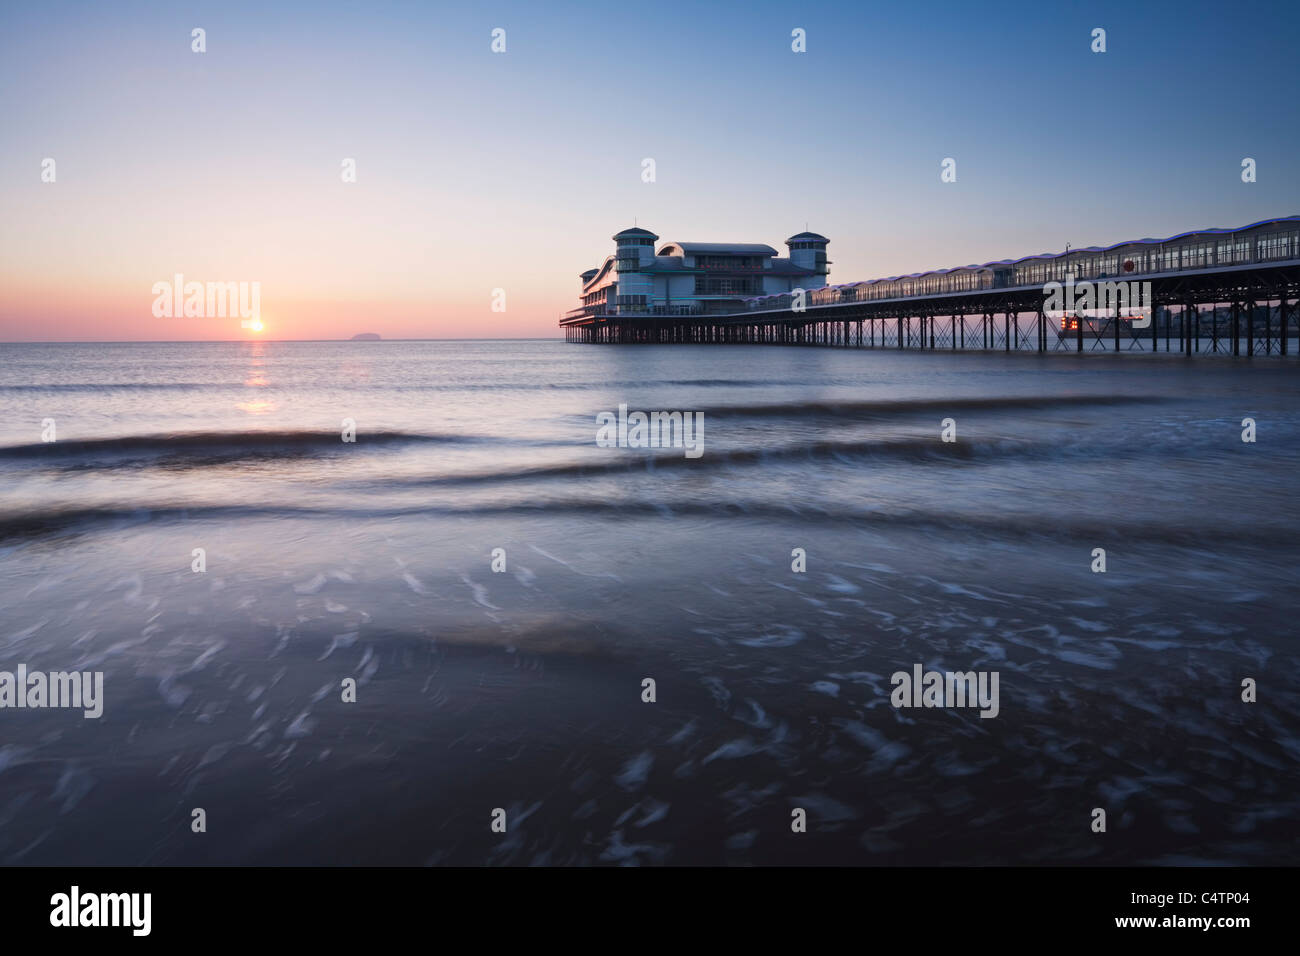 The New Grand Pier at Weston-super-Mare, rebuilt and opened in 2010 after the fire of 2008. Somerset. England. UK. - Stock Image